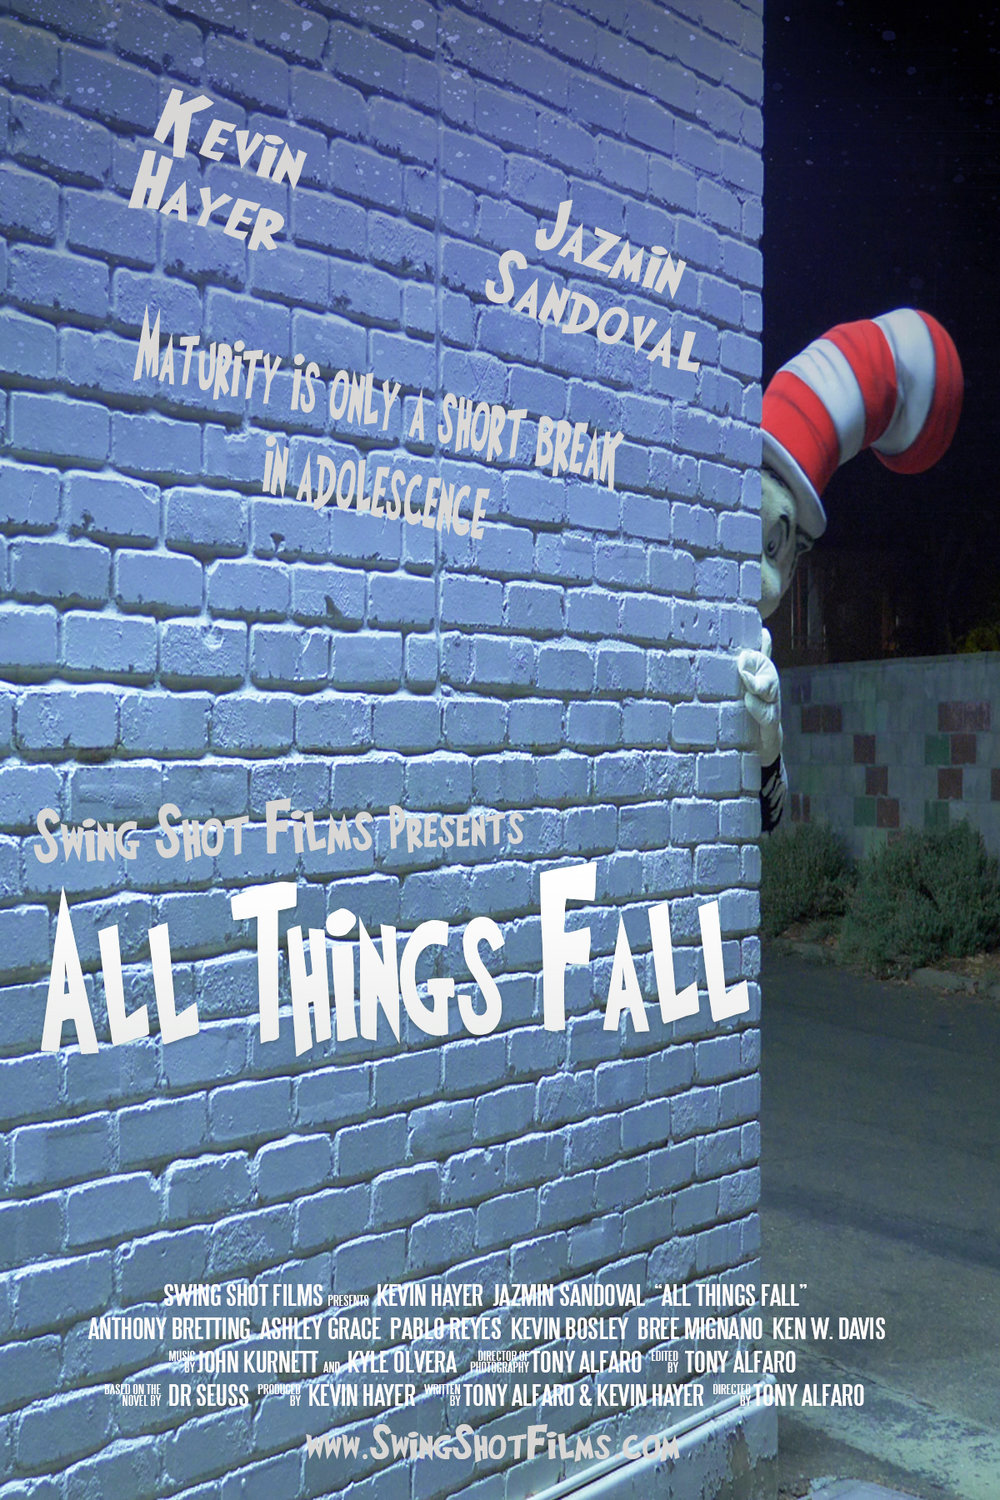 All Things Fall - Poster 2 (Rough).jpg